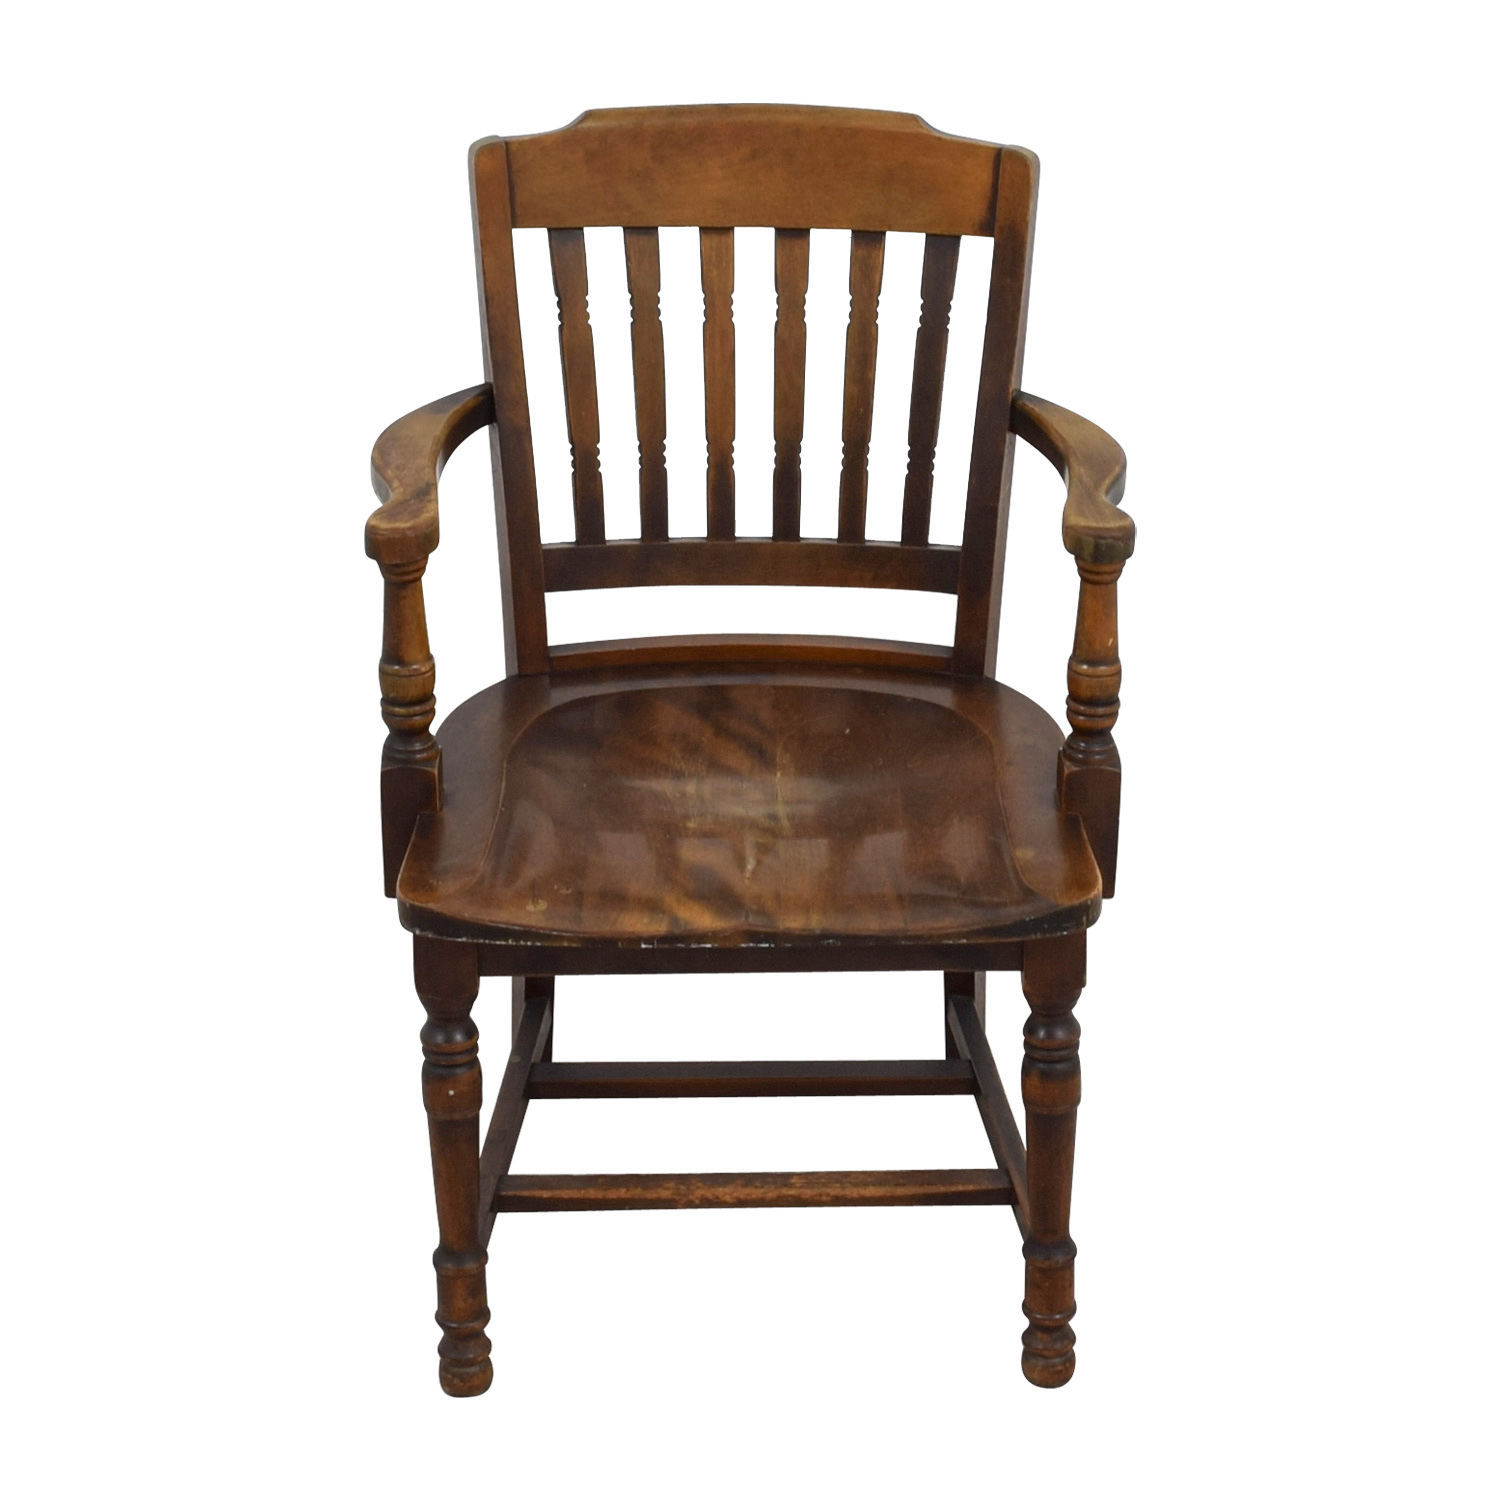 88 OFF  Antique Wood Spindel Chair  Chairs